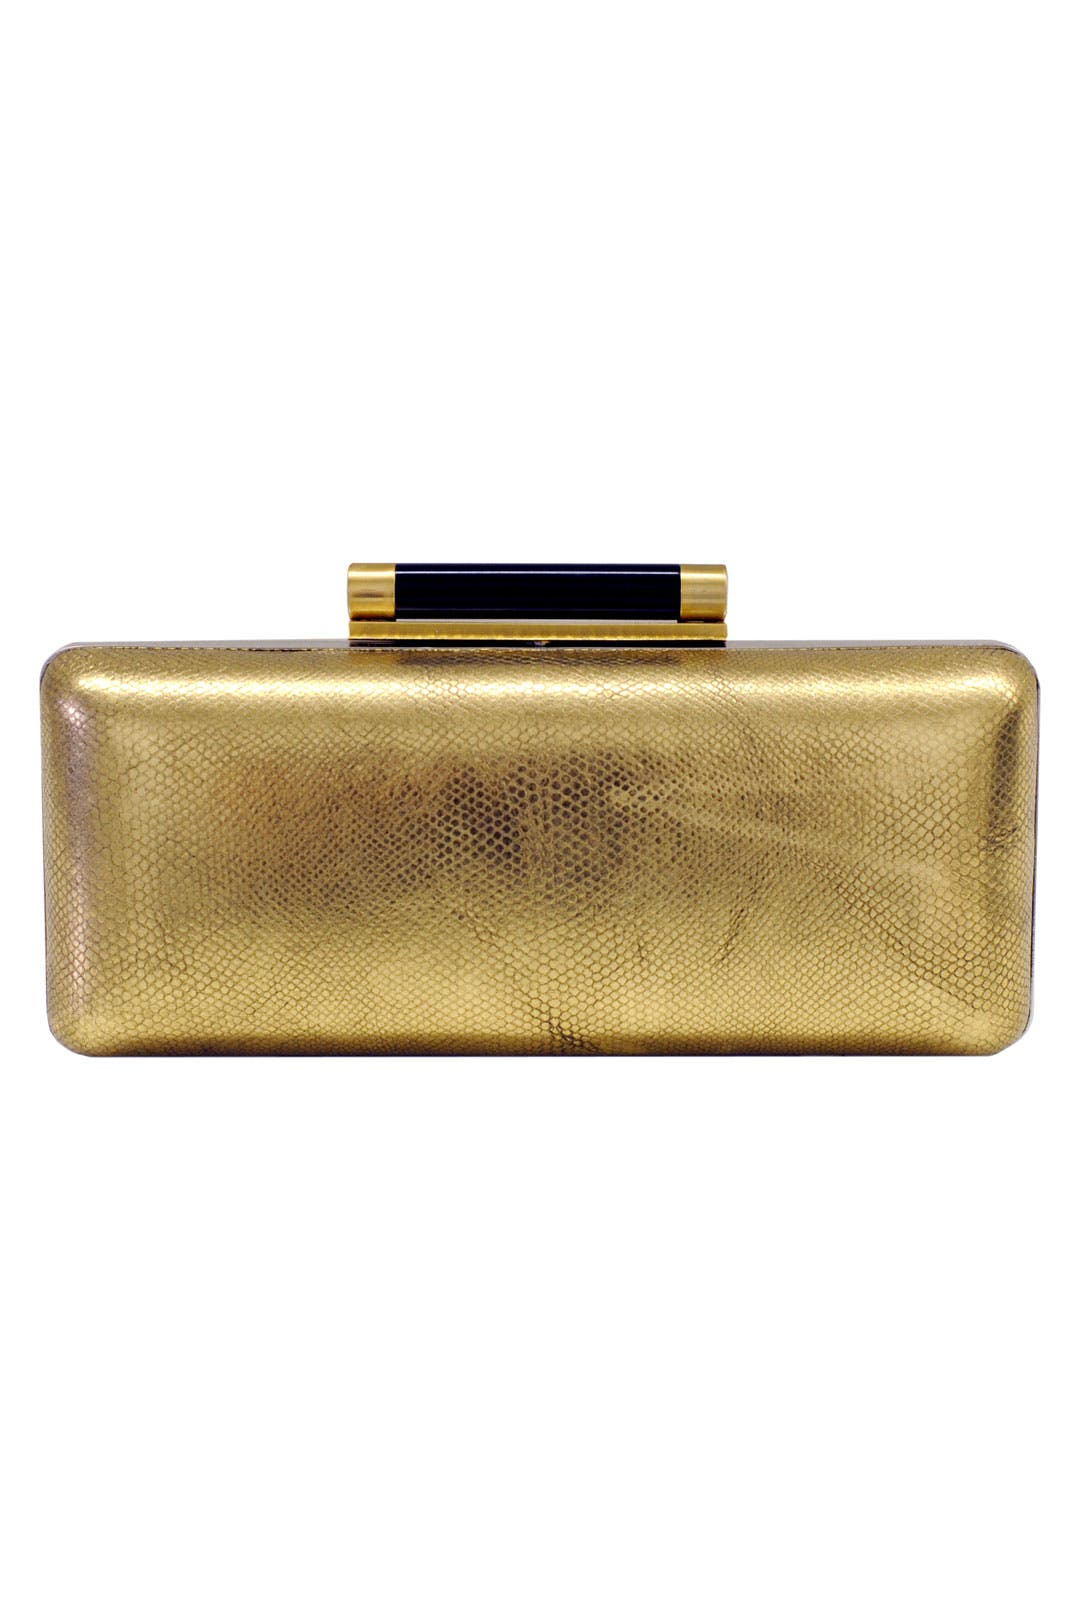 Gold Tonda Metallic Clutch by Diane von Furstenberg Handbags